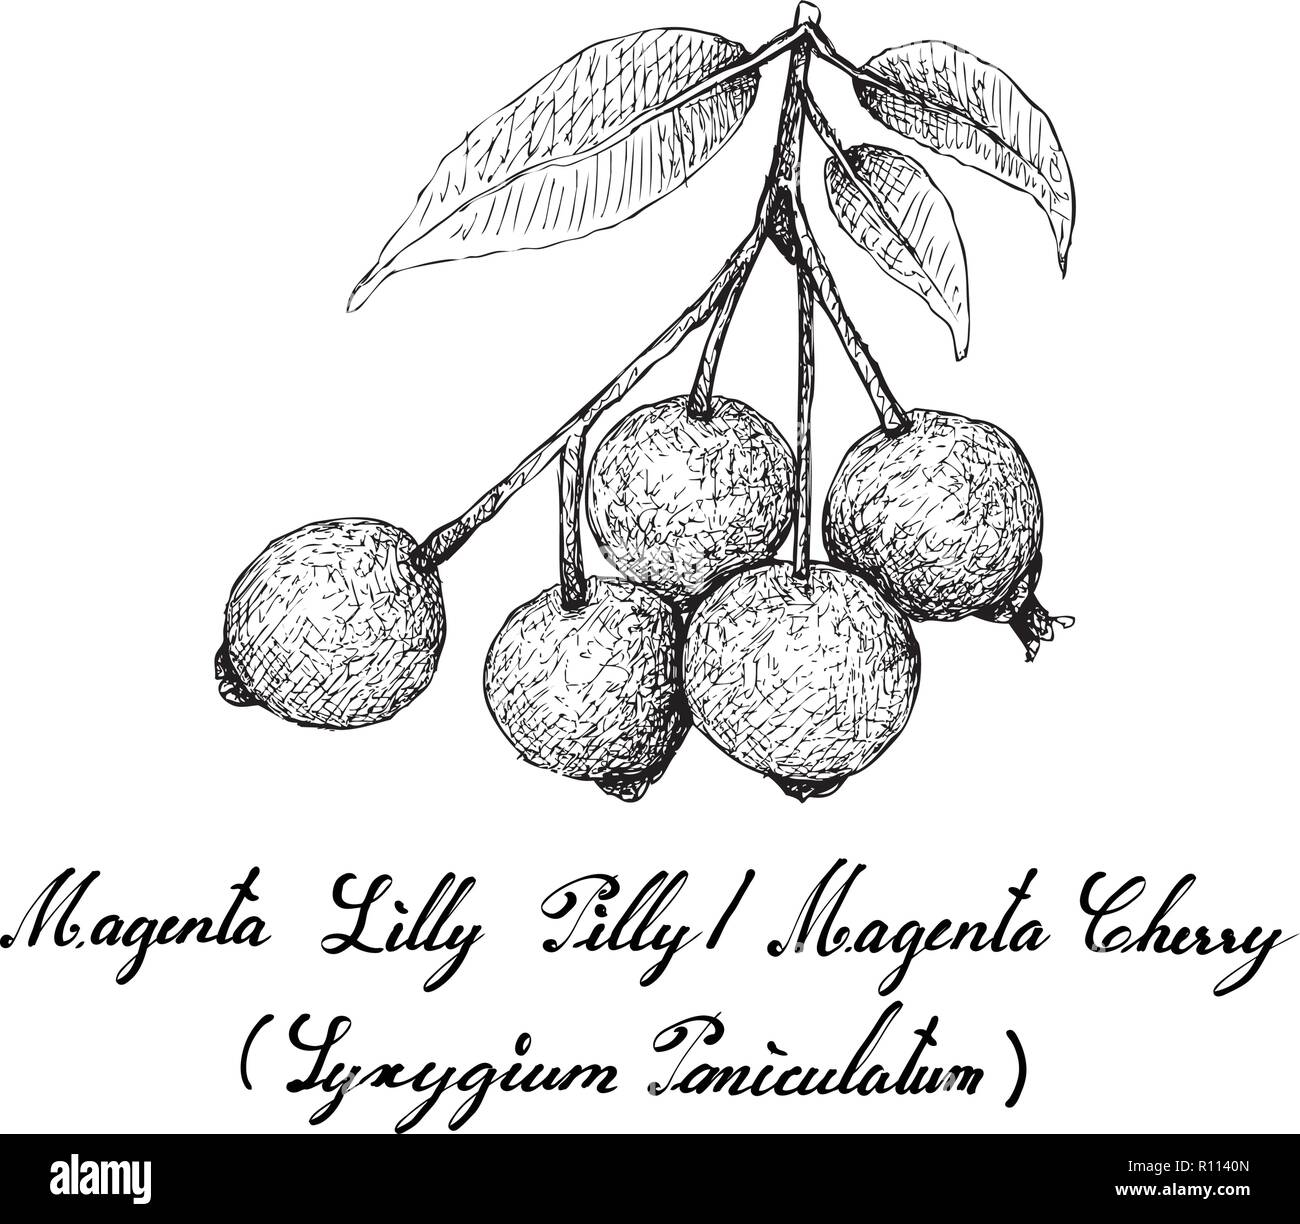 Berry Fruit, Illustration Hand Drawn Sketch of Magenta Lilly Pilly,  Magenta Cherry or Syzygium Paniculatum Fruits Isolated on White Background. - Stock Vector